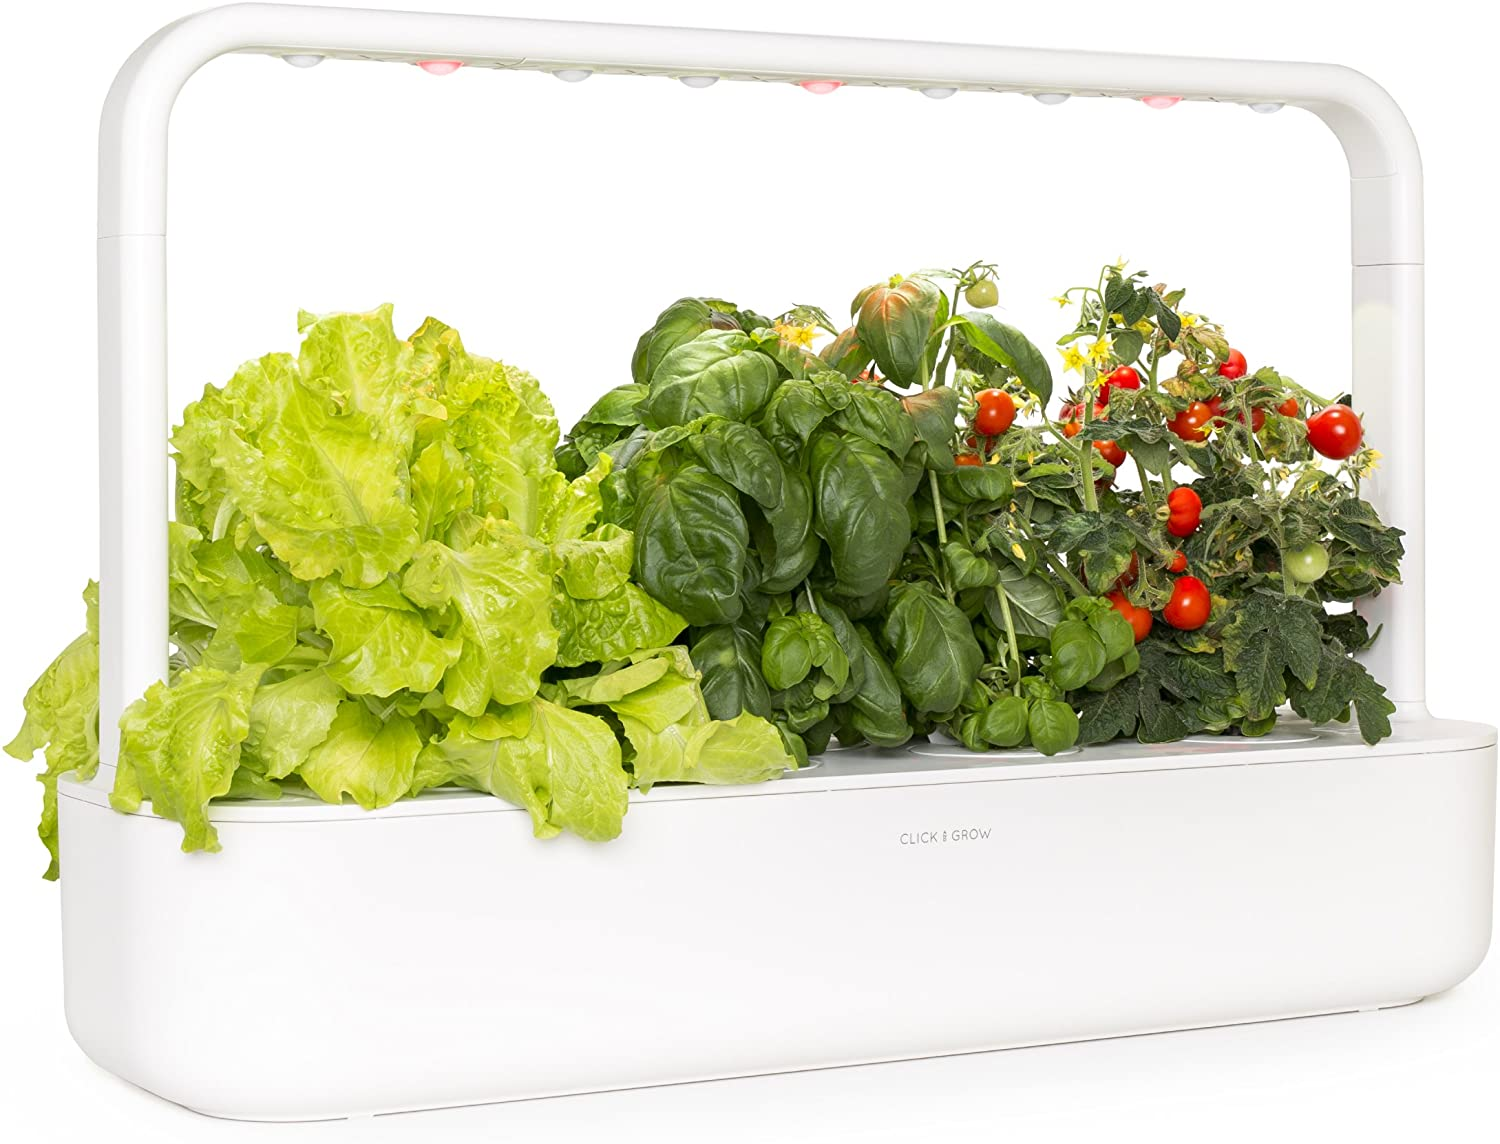 Click and Grow Smart Garden 9 Indoor Home Garden Includes 3 Mini Tomato, 3 Basil and 3 Green Lettuce Plant pods , White